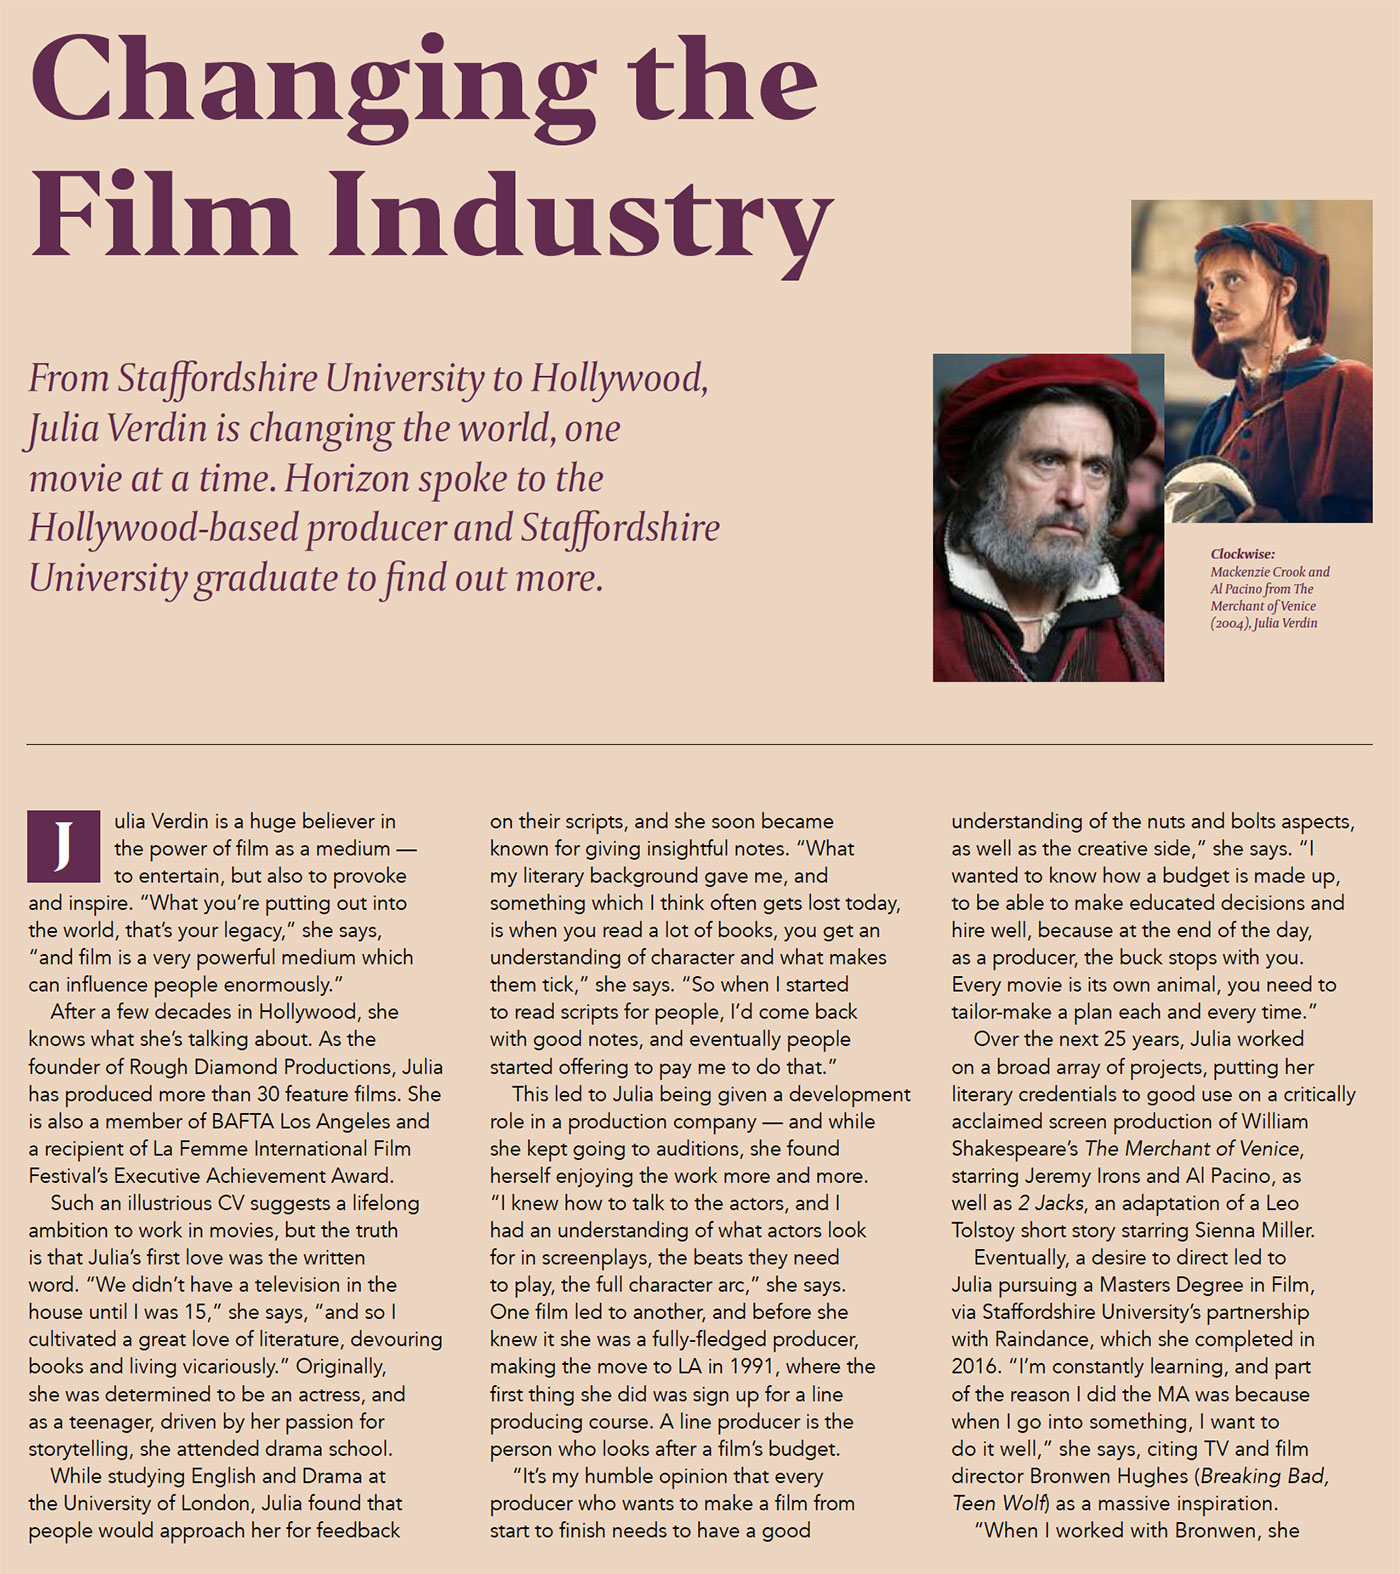 Horizon: Changing the Film Industry